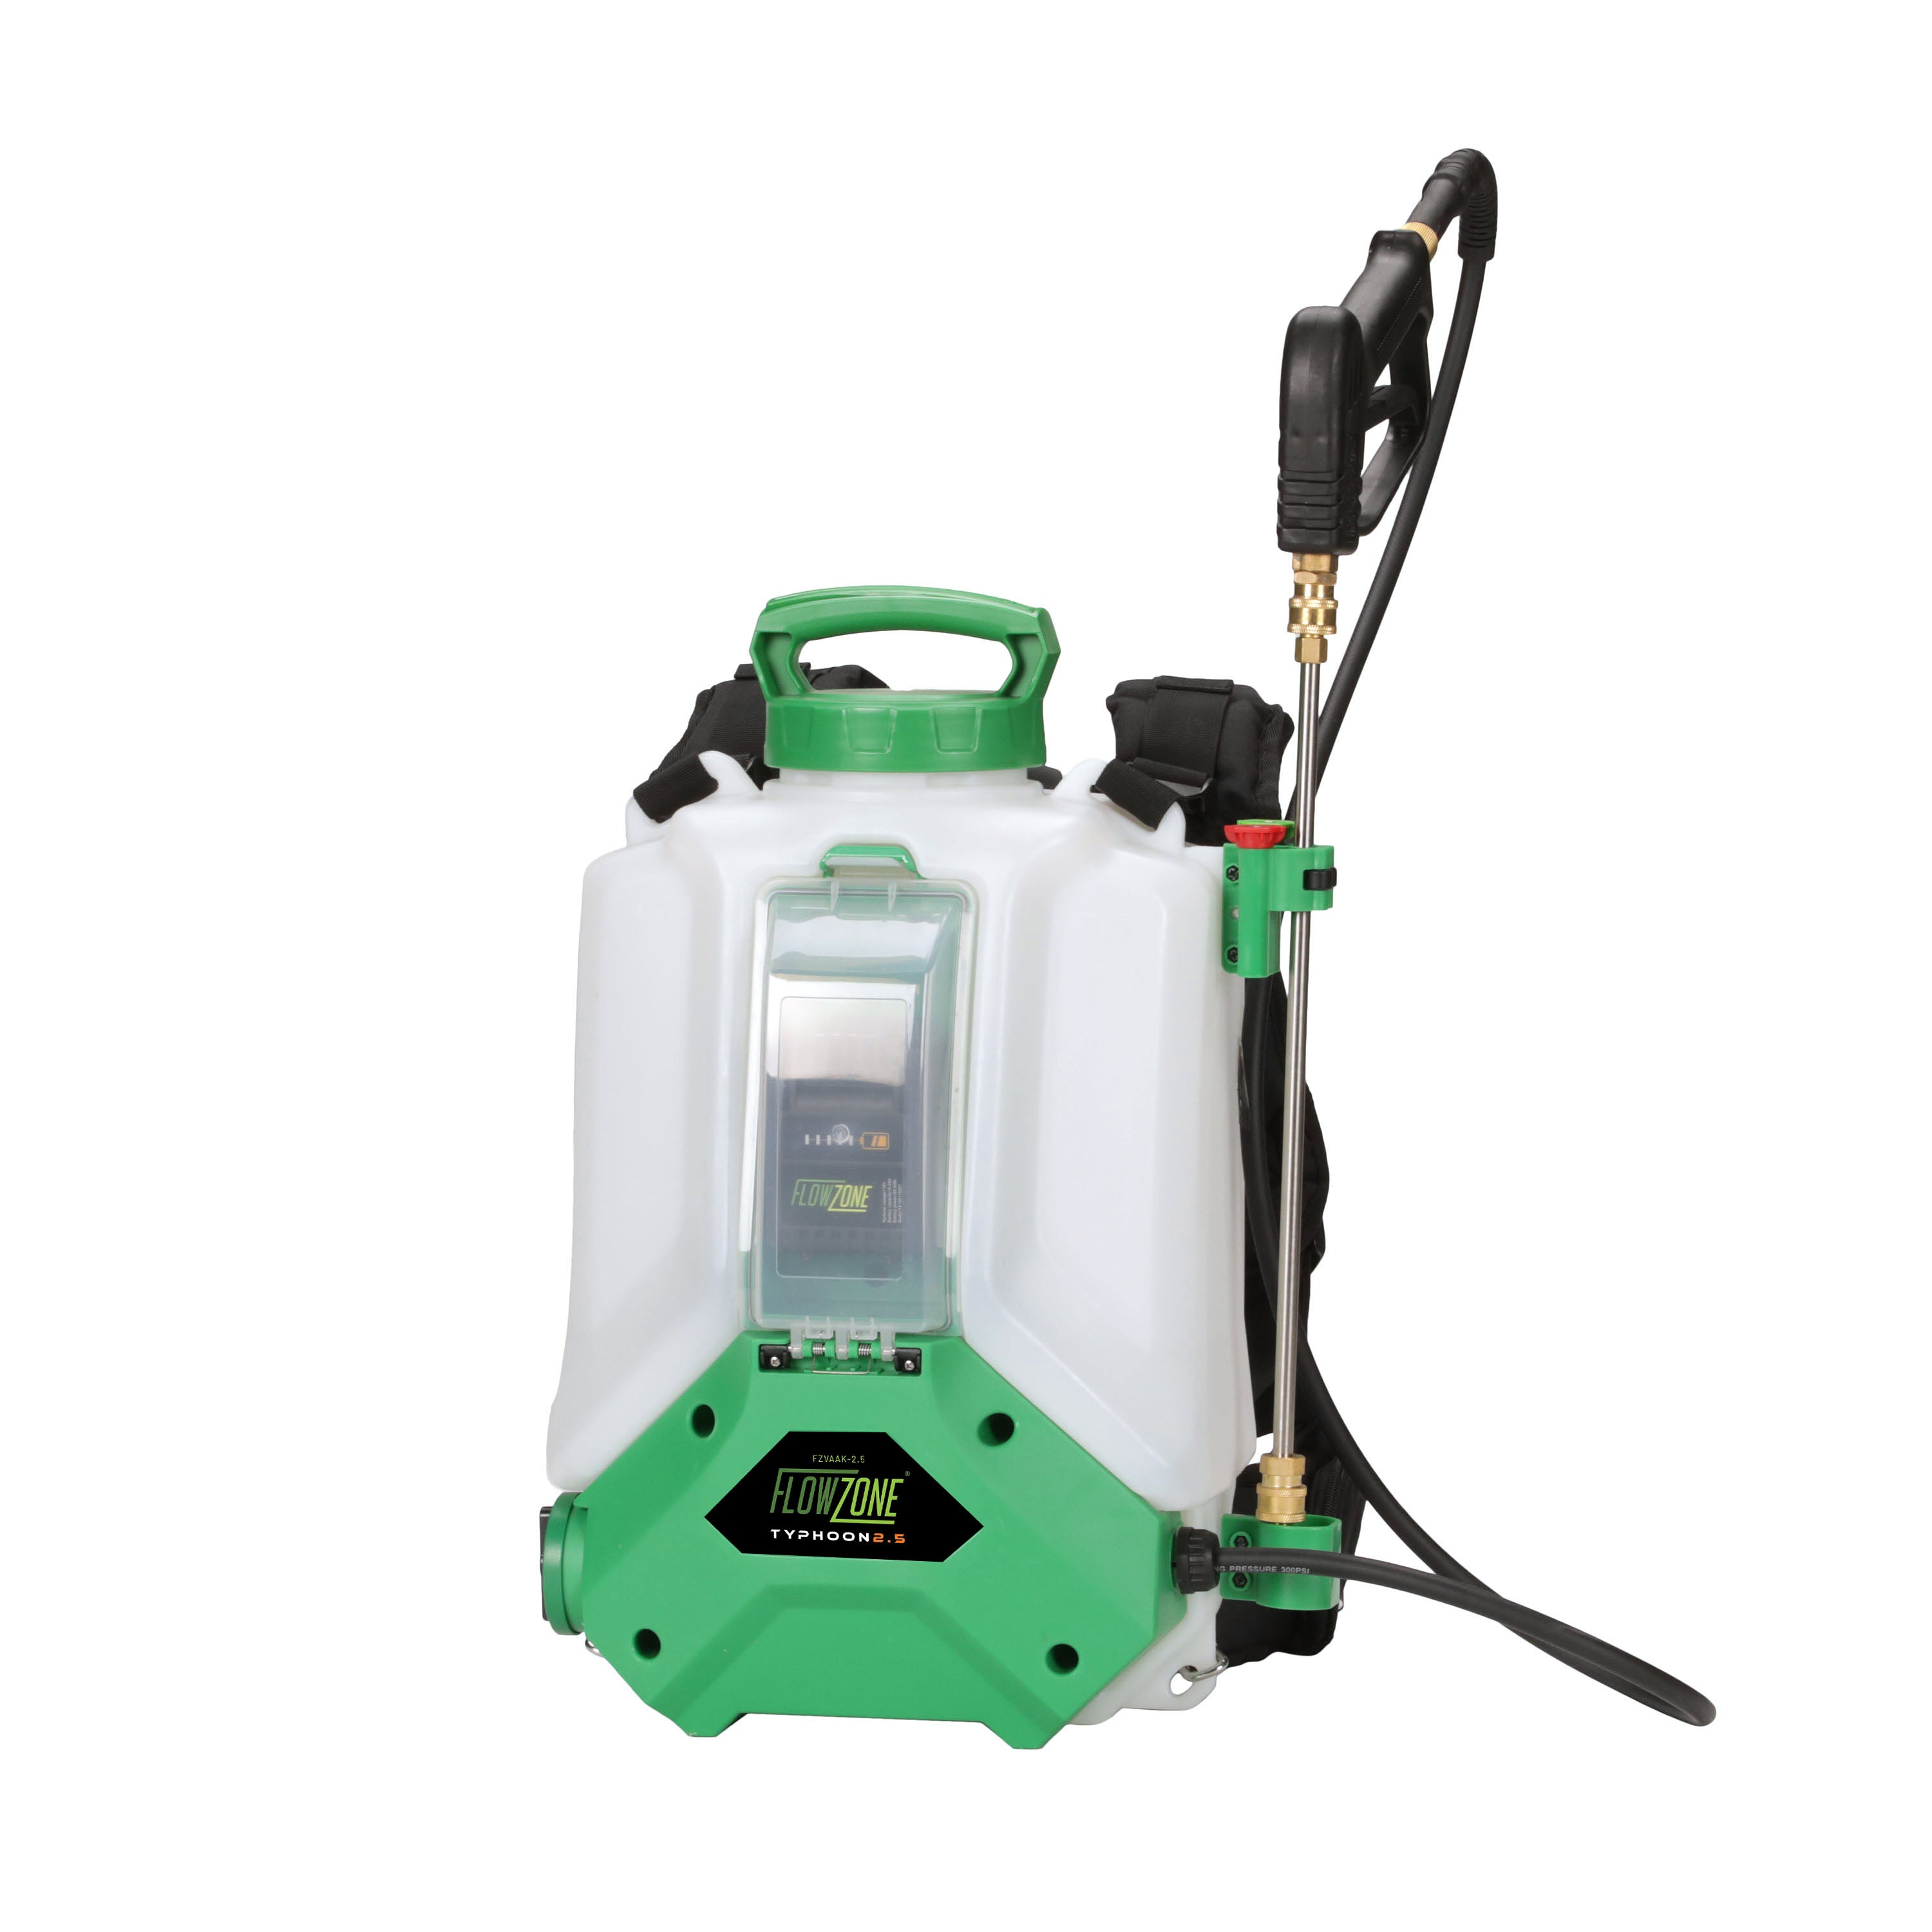 Typhoon 2.5 Variable Pressure 5-Position Battery Backpack Sprayer (4-Gallon)